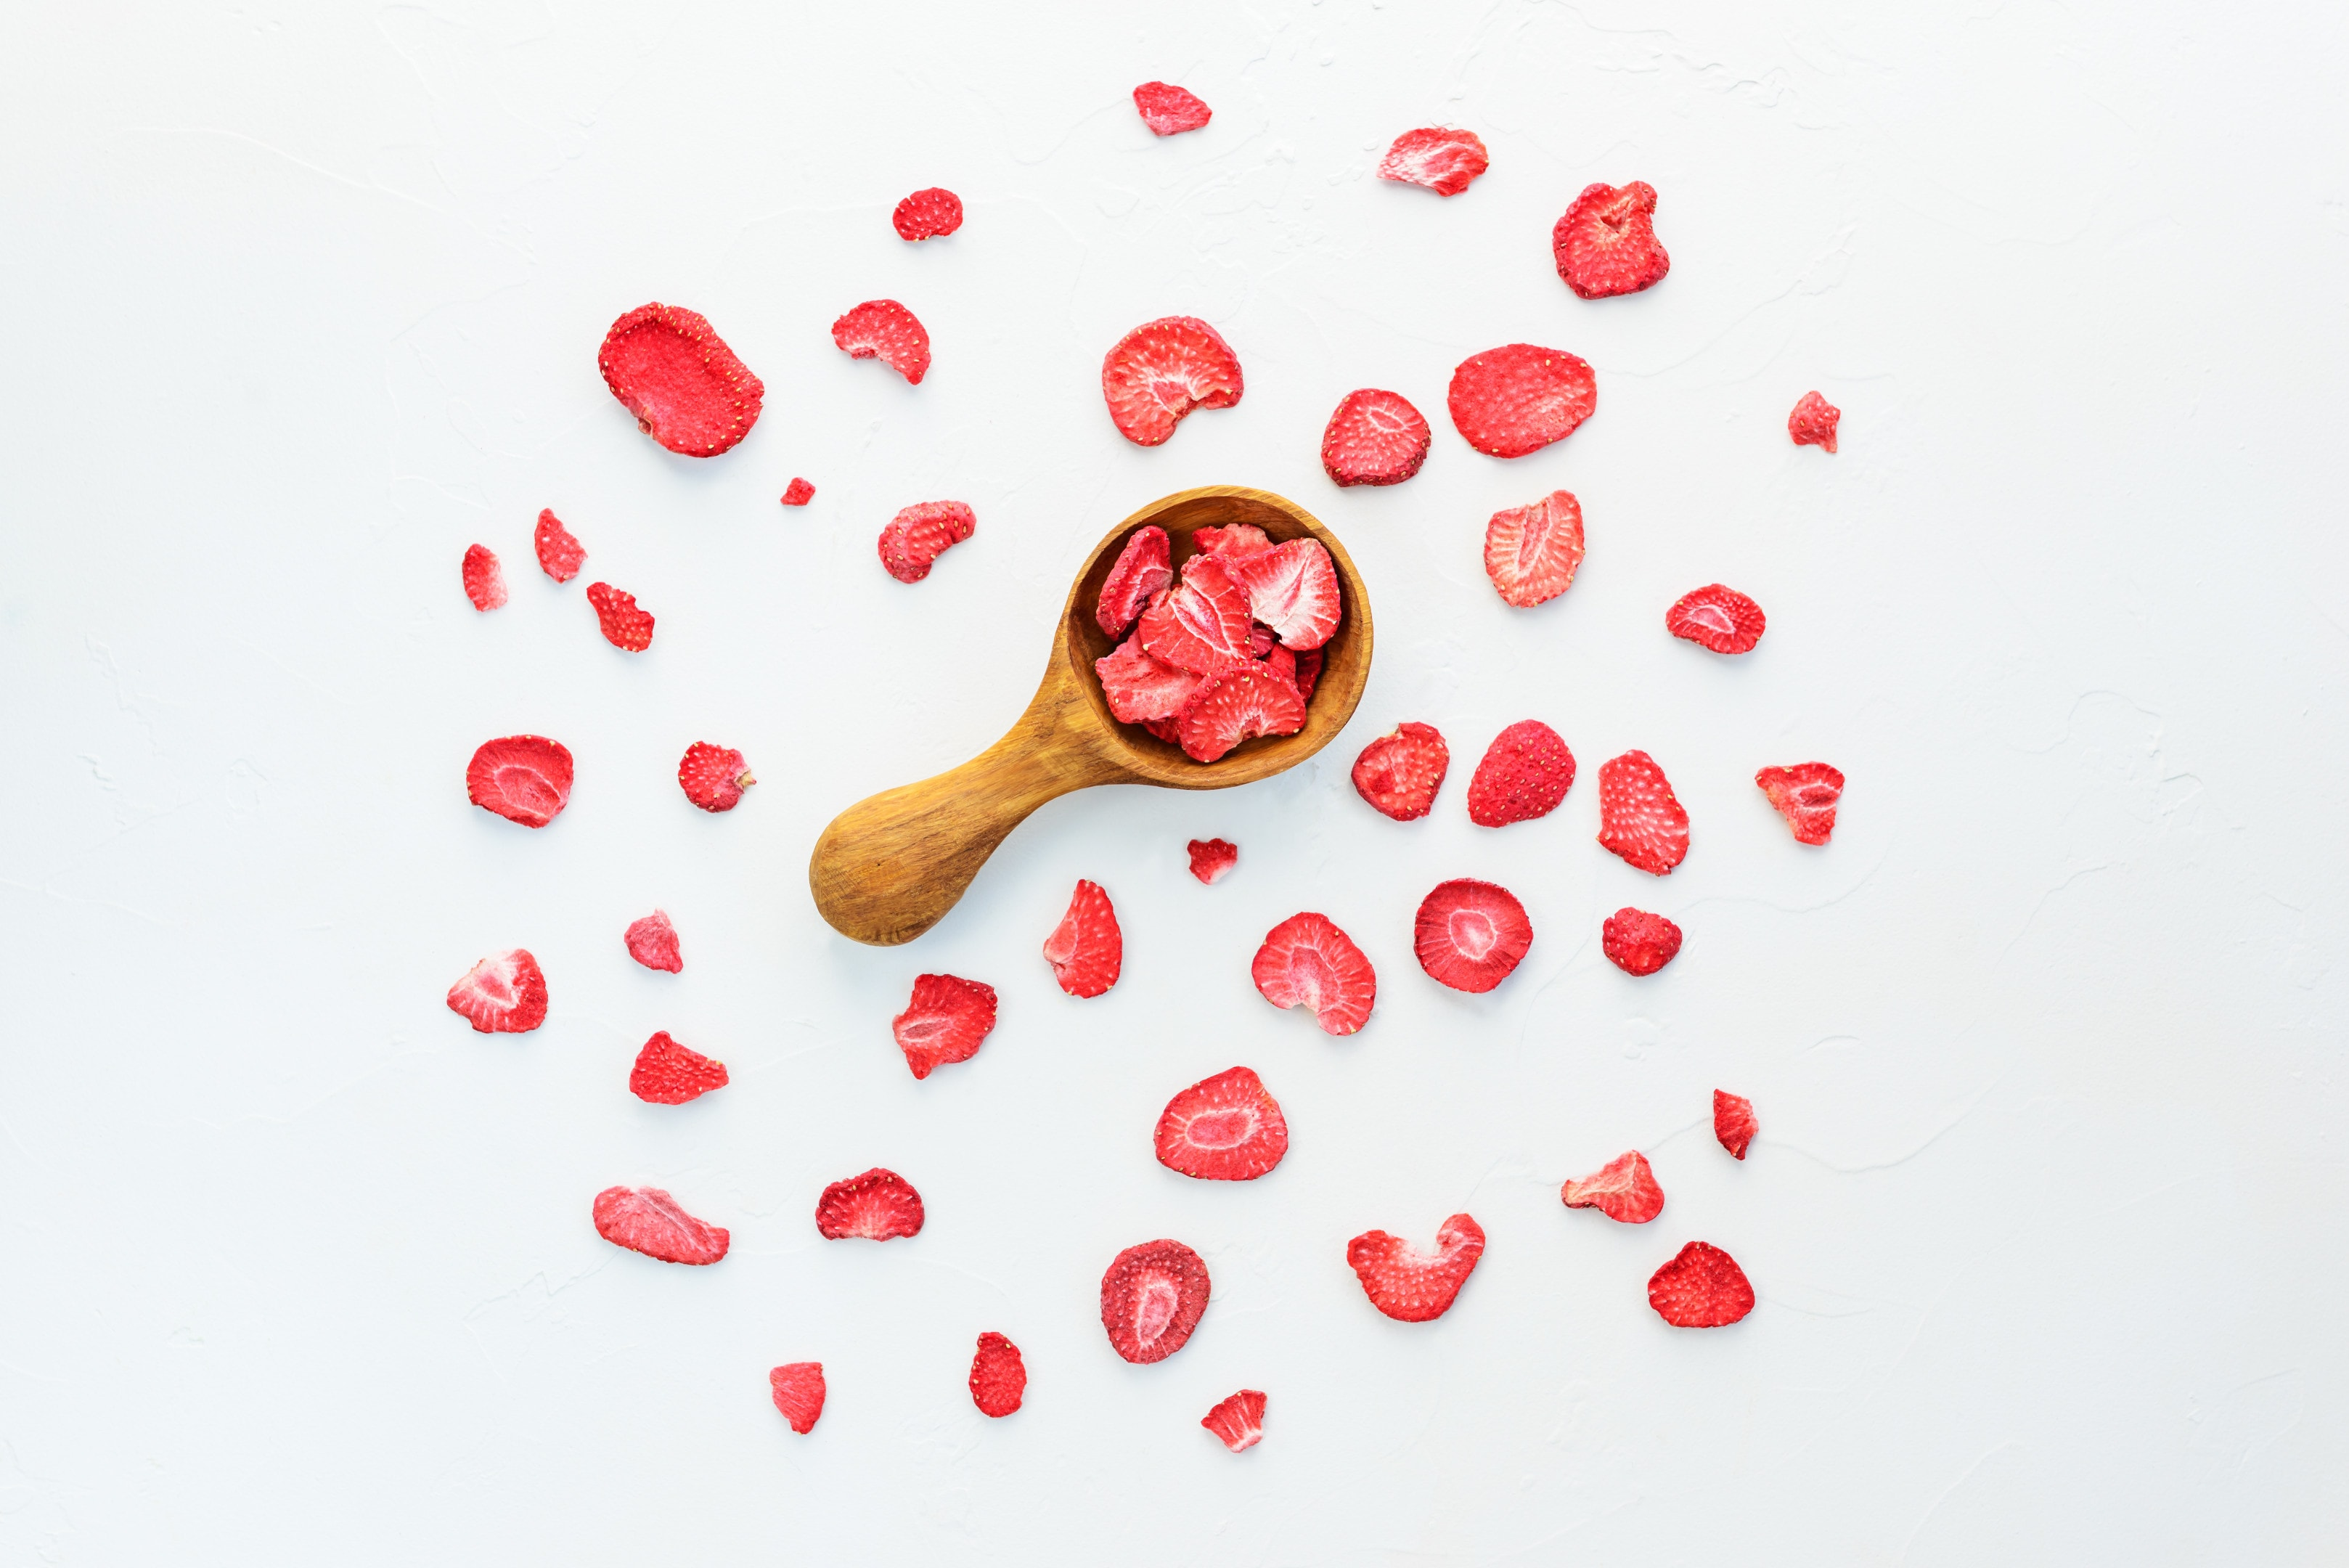 Pieces of dehydrated strawberries with wooden spoon on white background